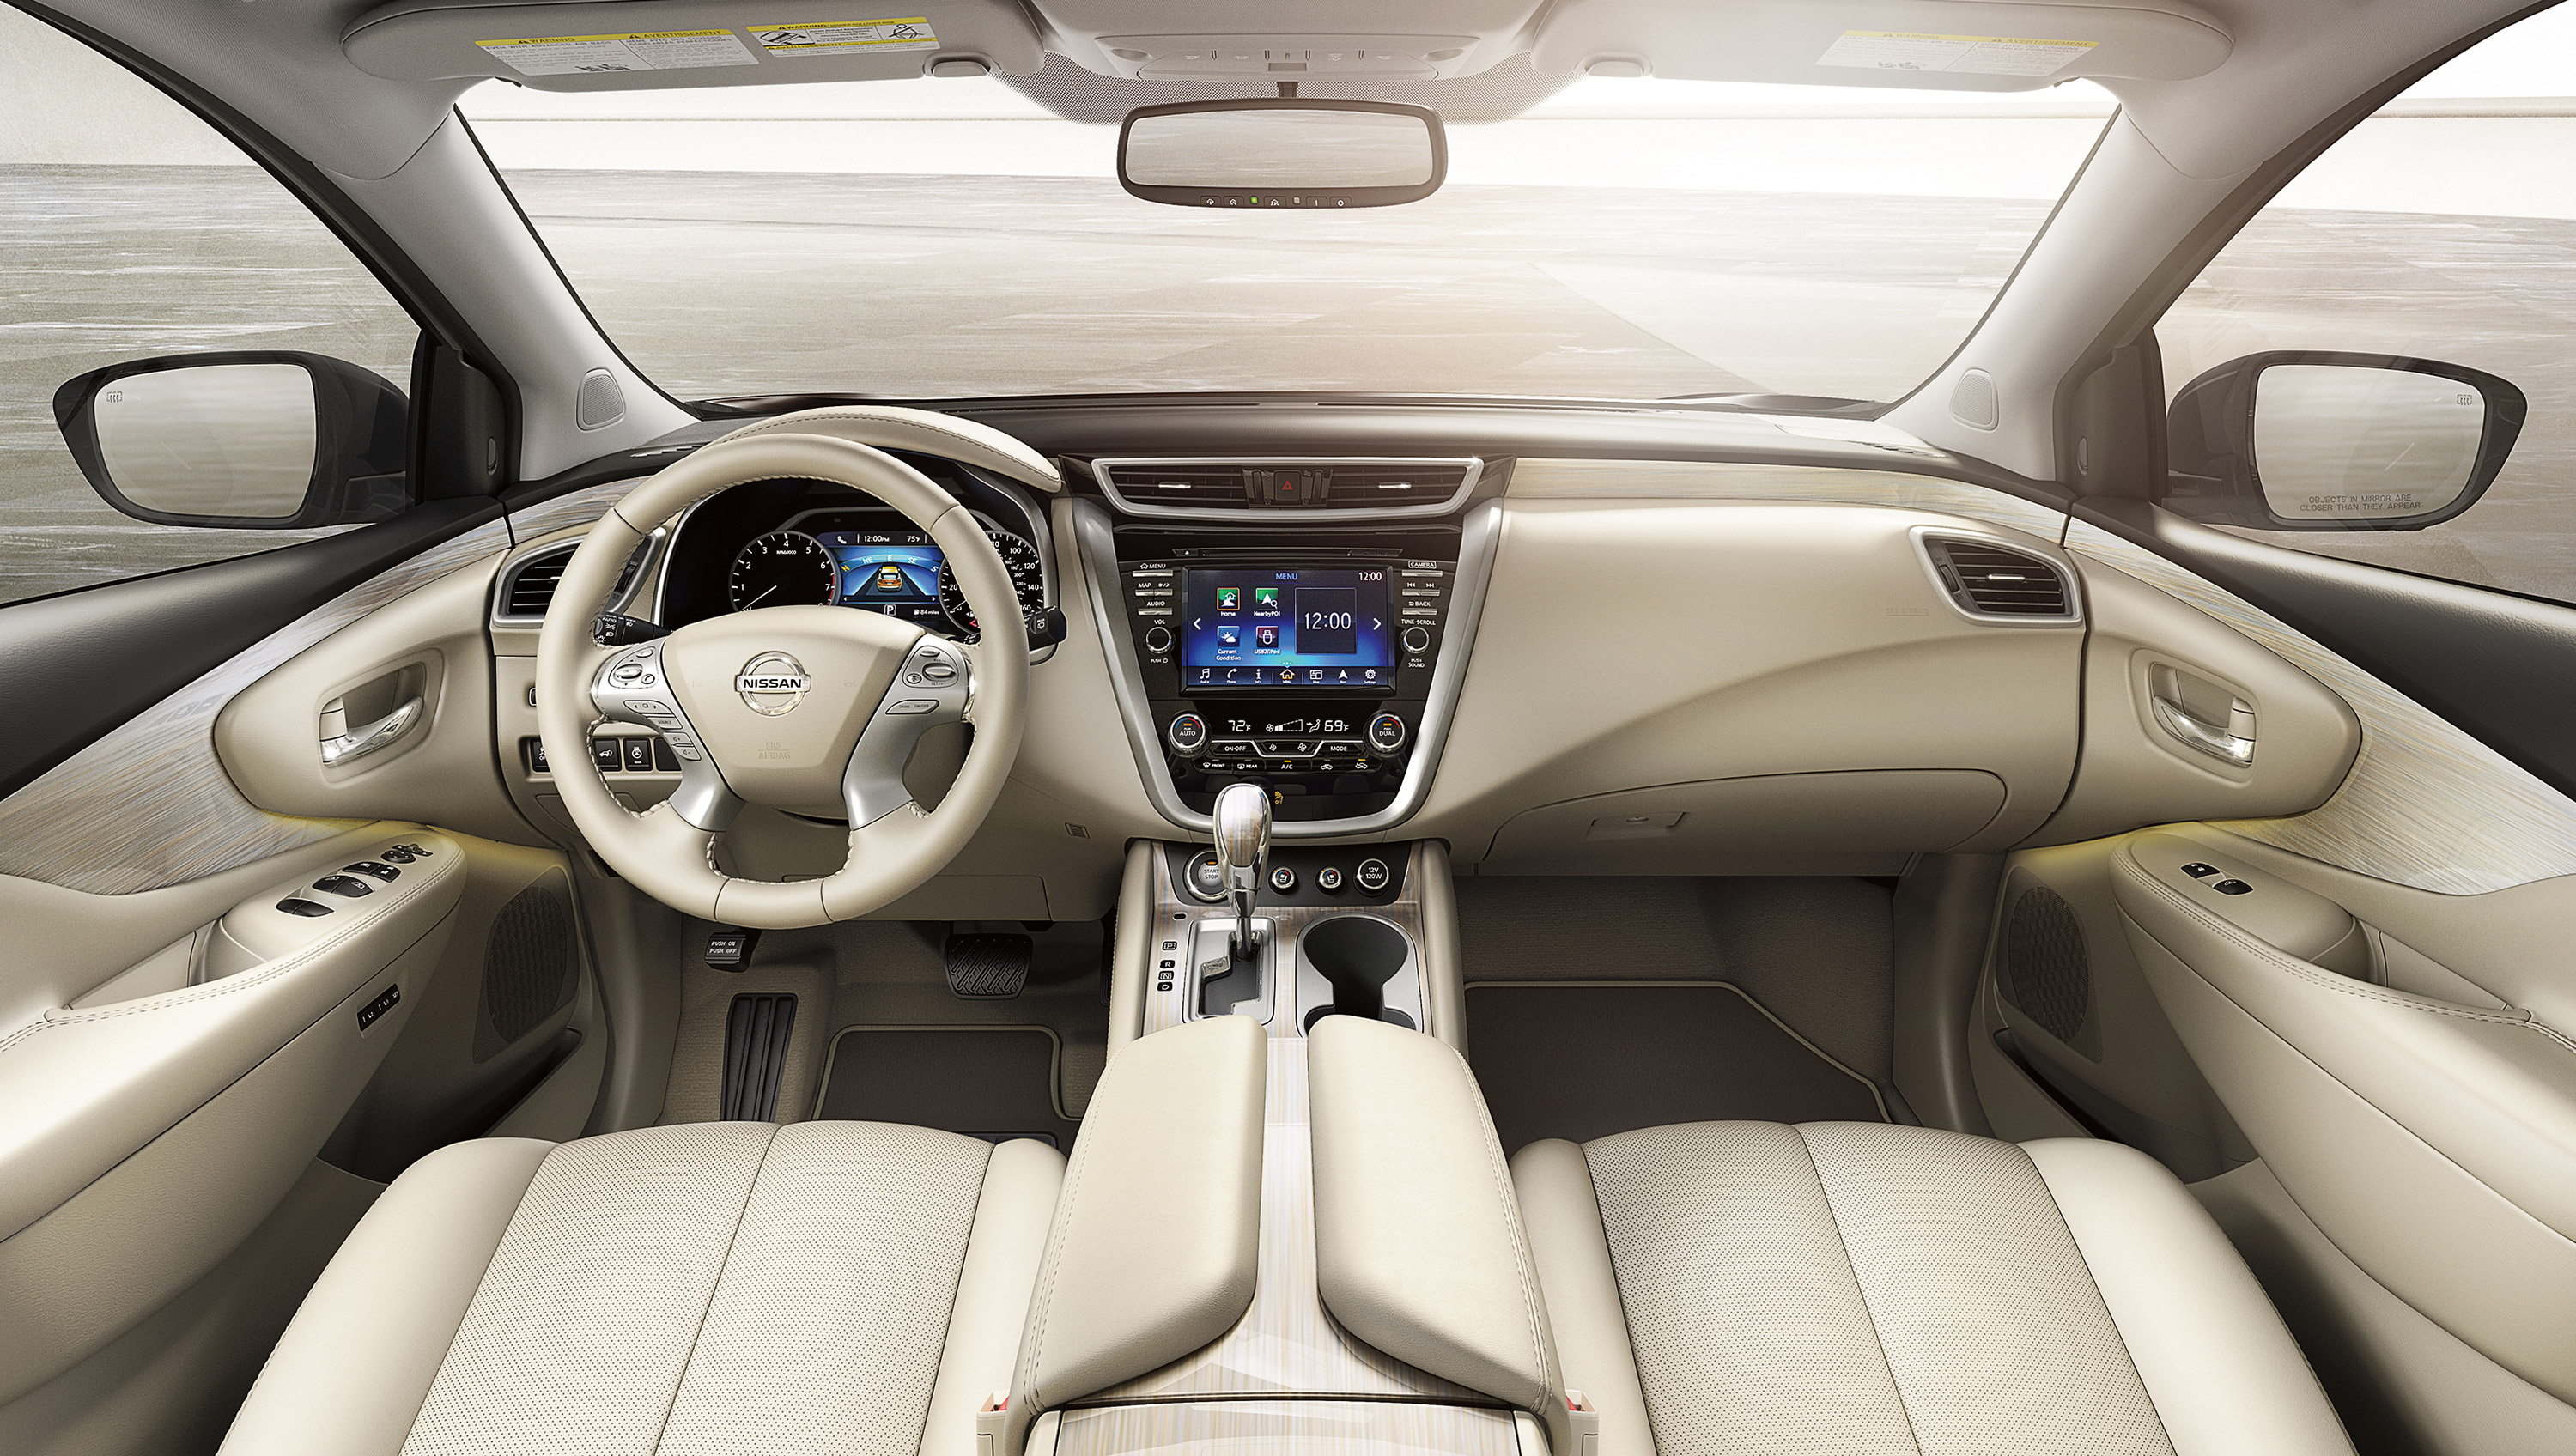 New Nissan Murano Interior Features